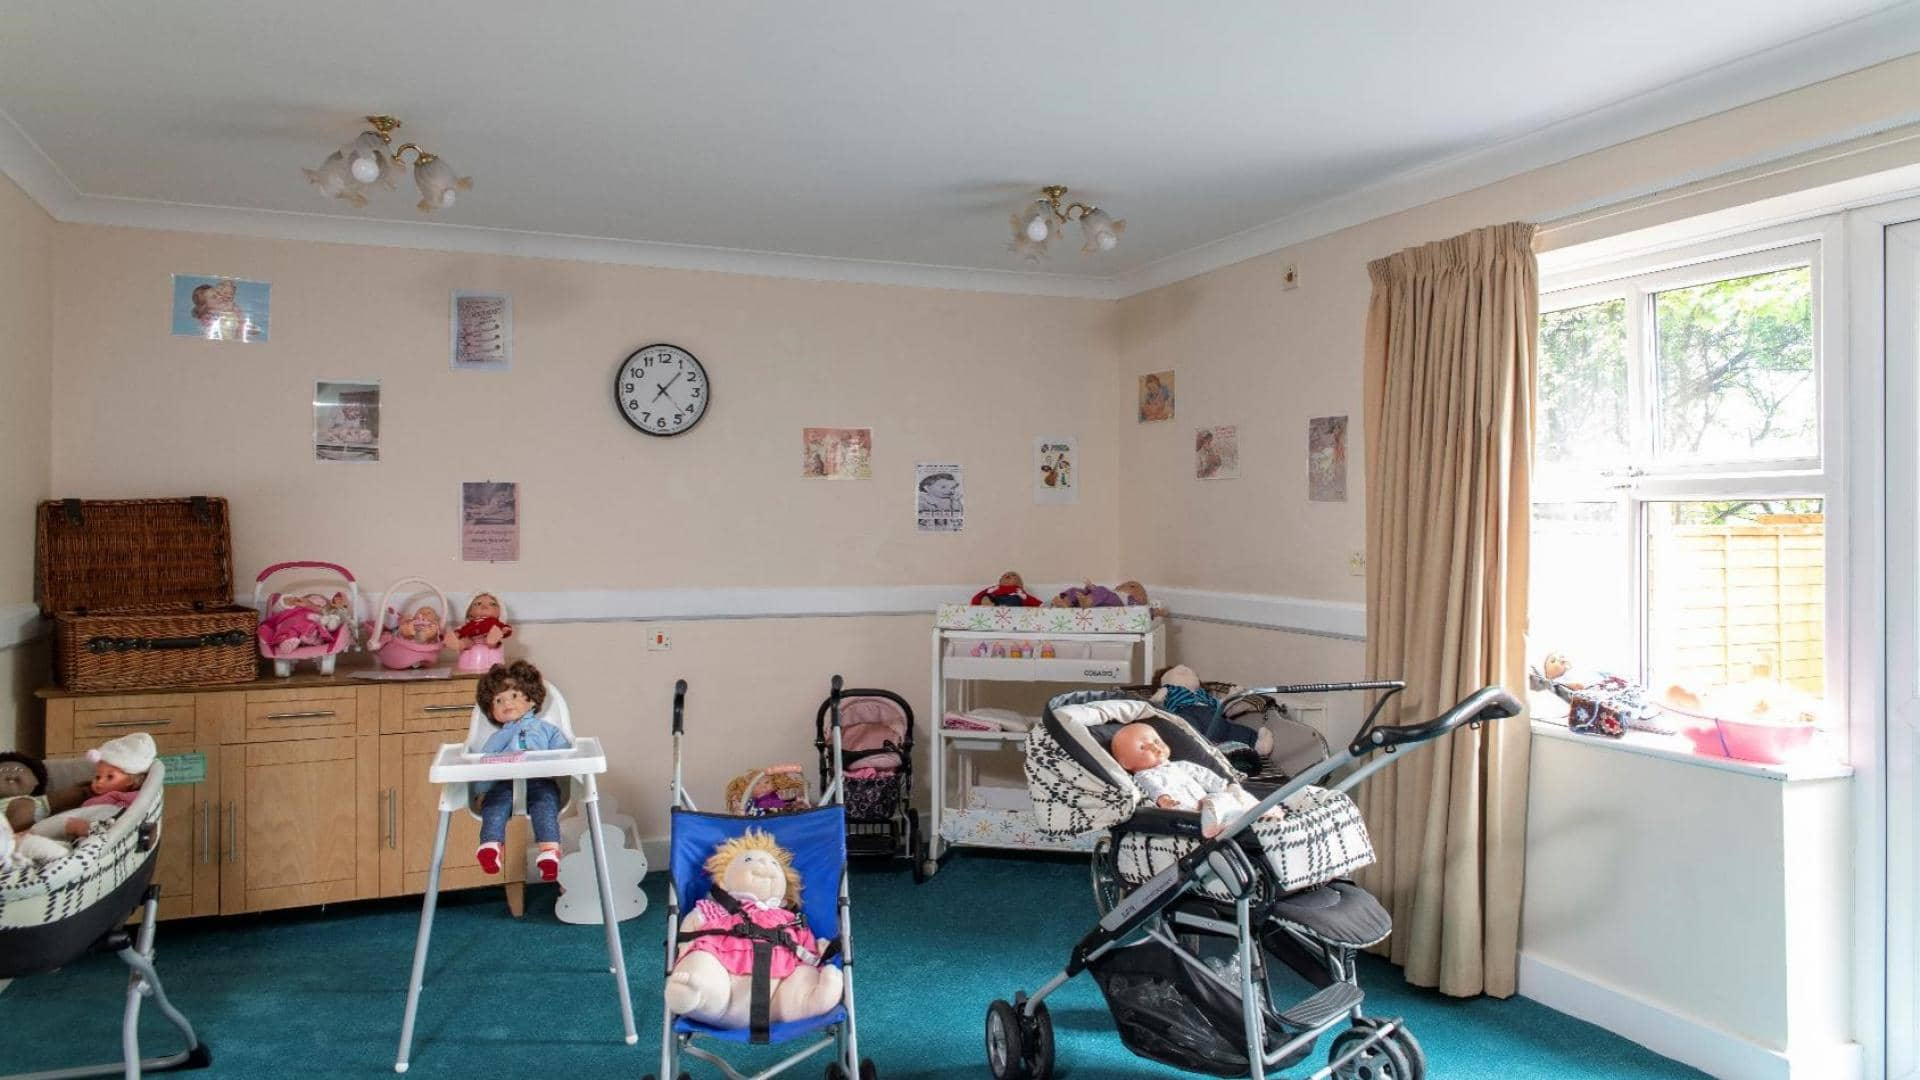 Paisley Lodge Care Home, Doll Therapy Room